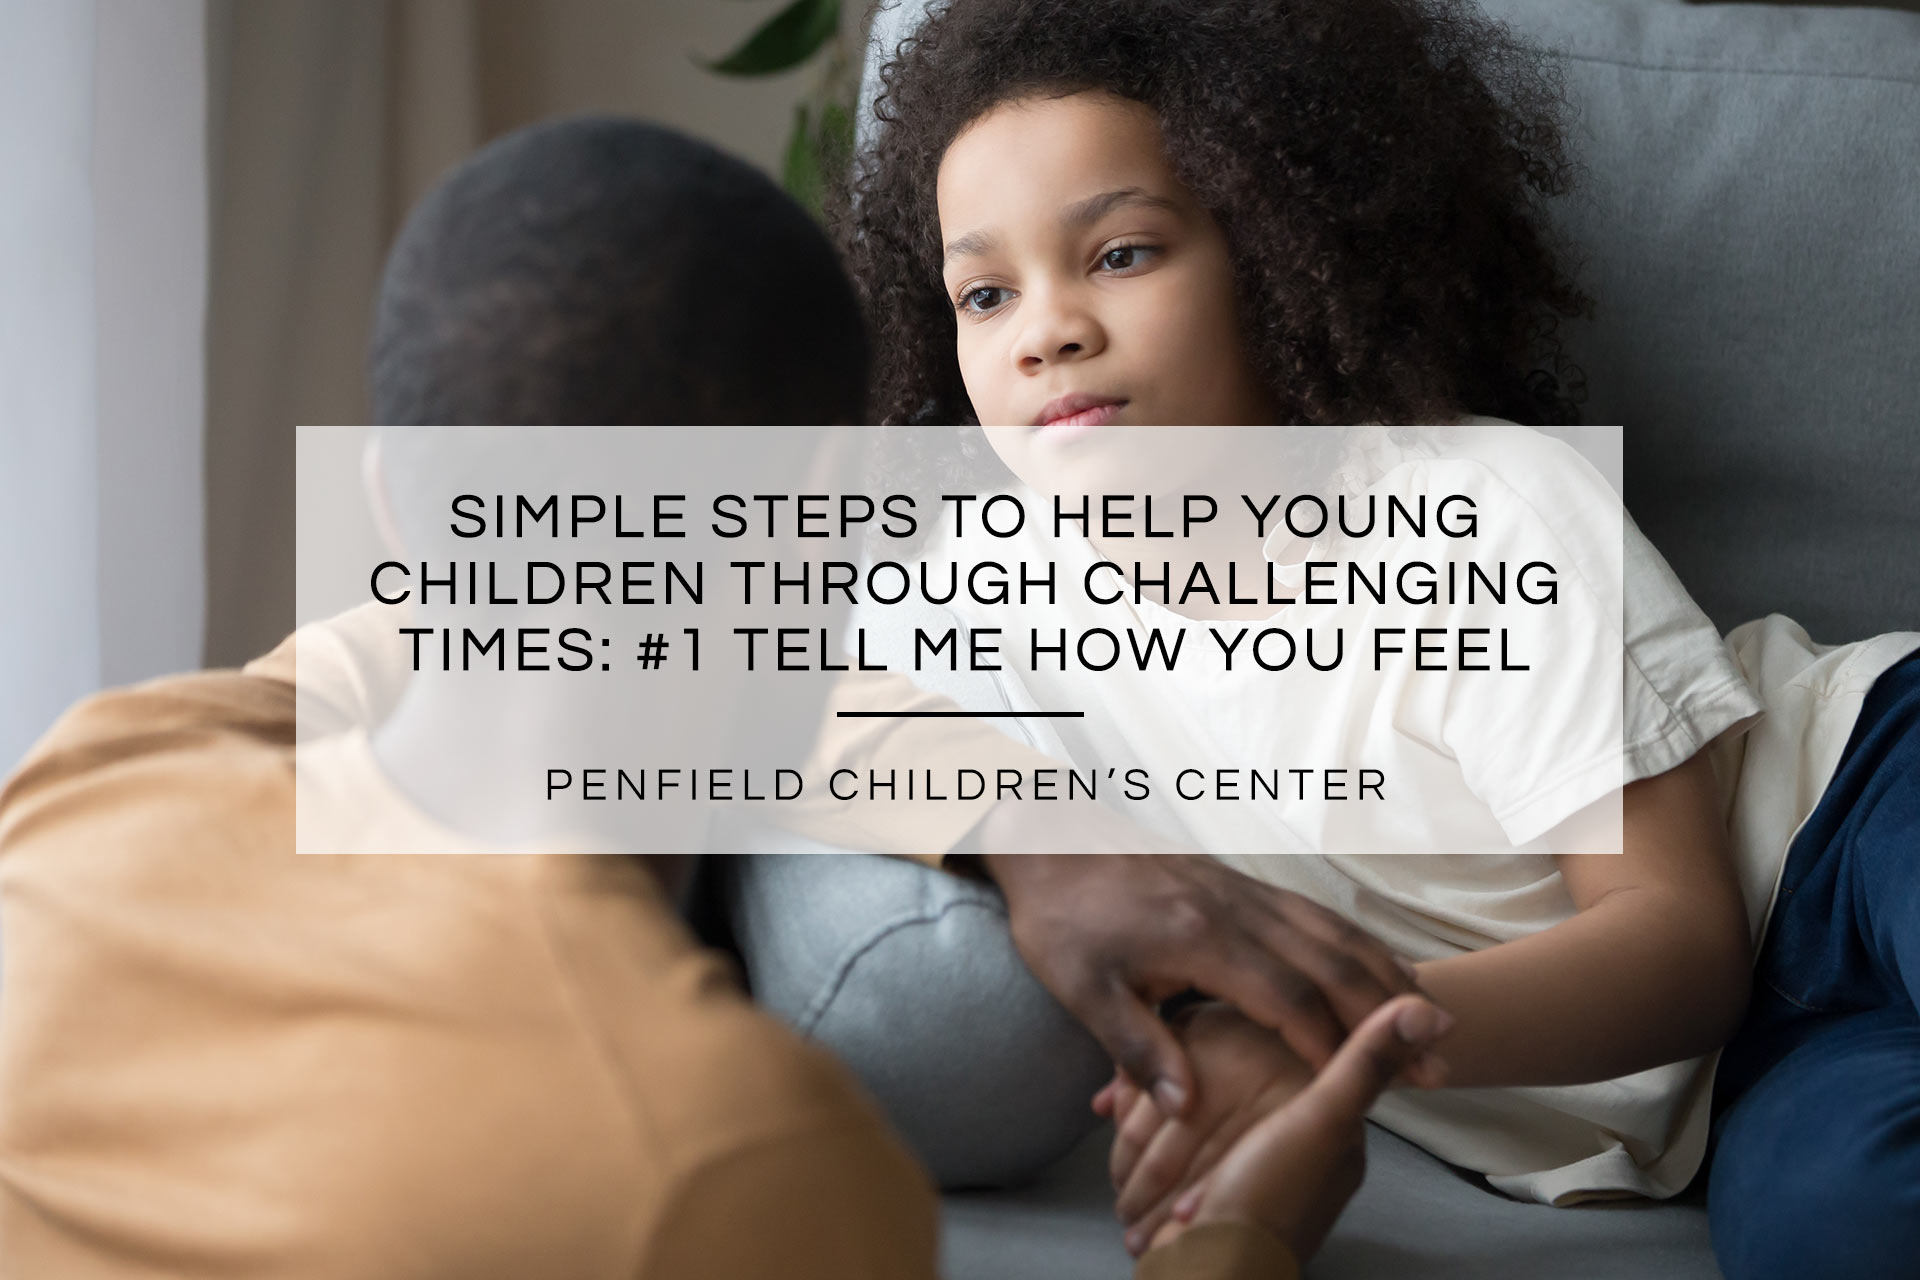 Simple Steps to help Young Children through challenging times